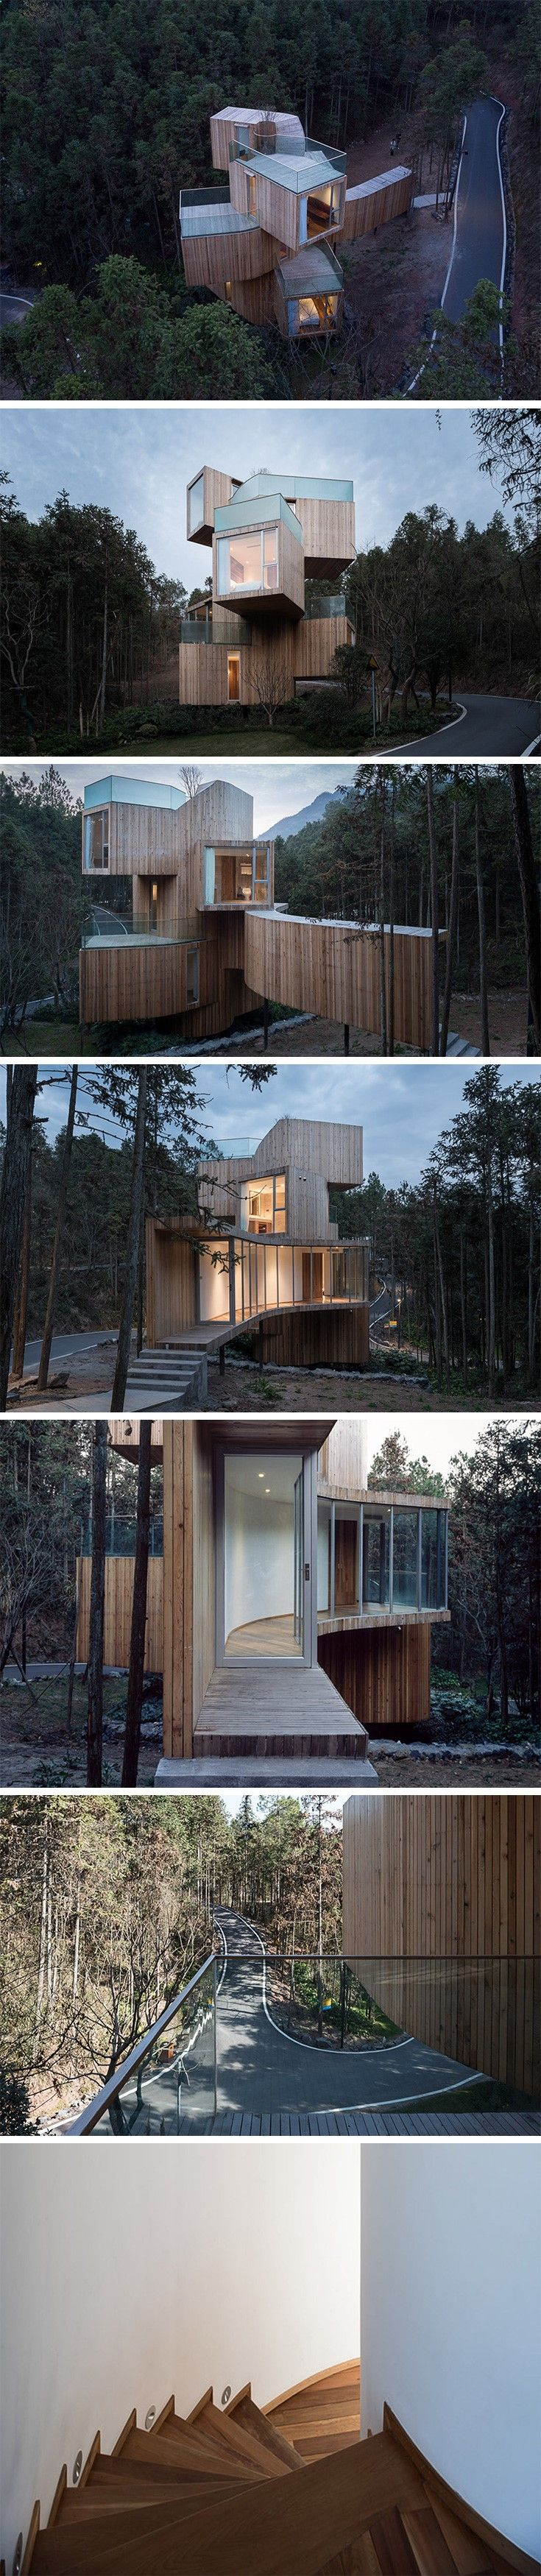 best 25 prefab container homes ideas on pinterest